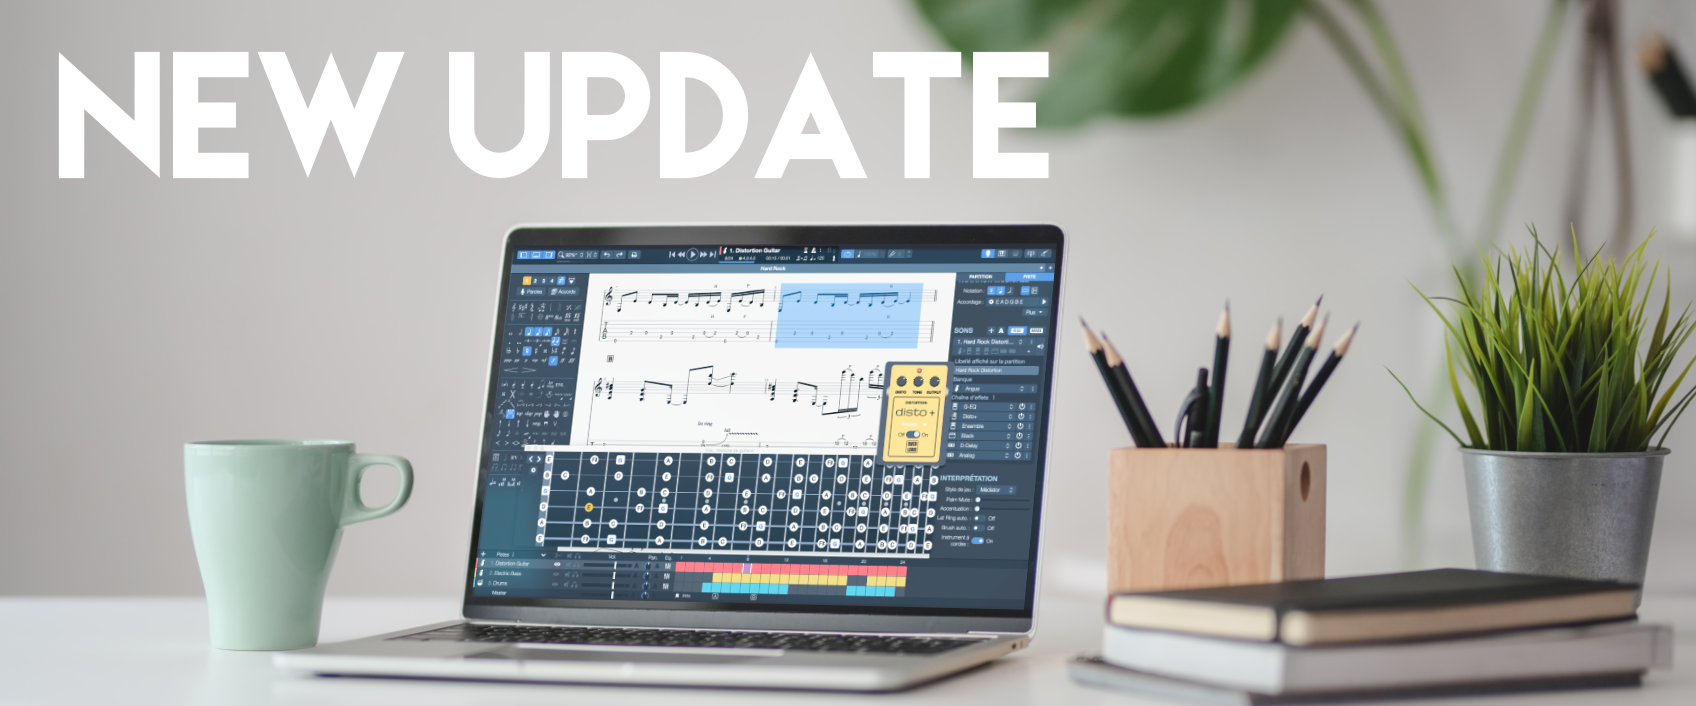 Guitar Pro 7.5.4 is now available